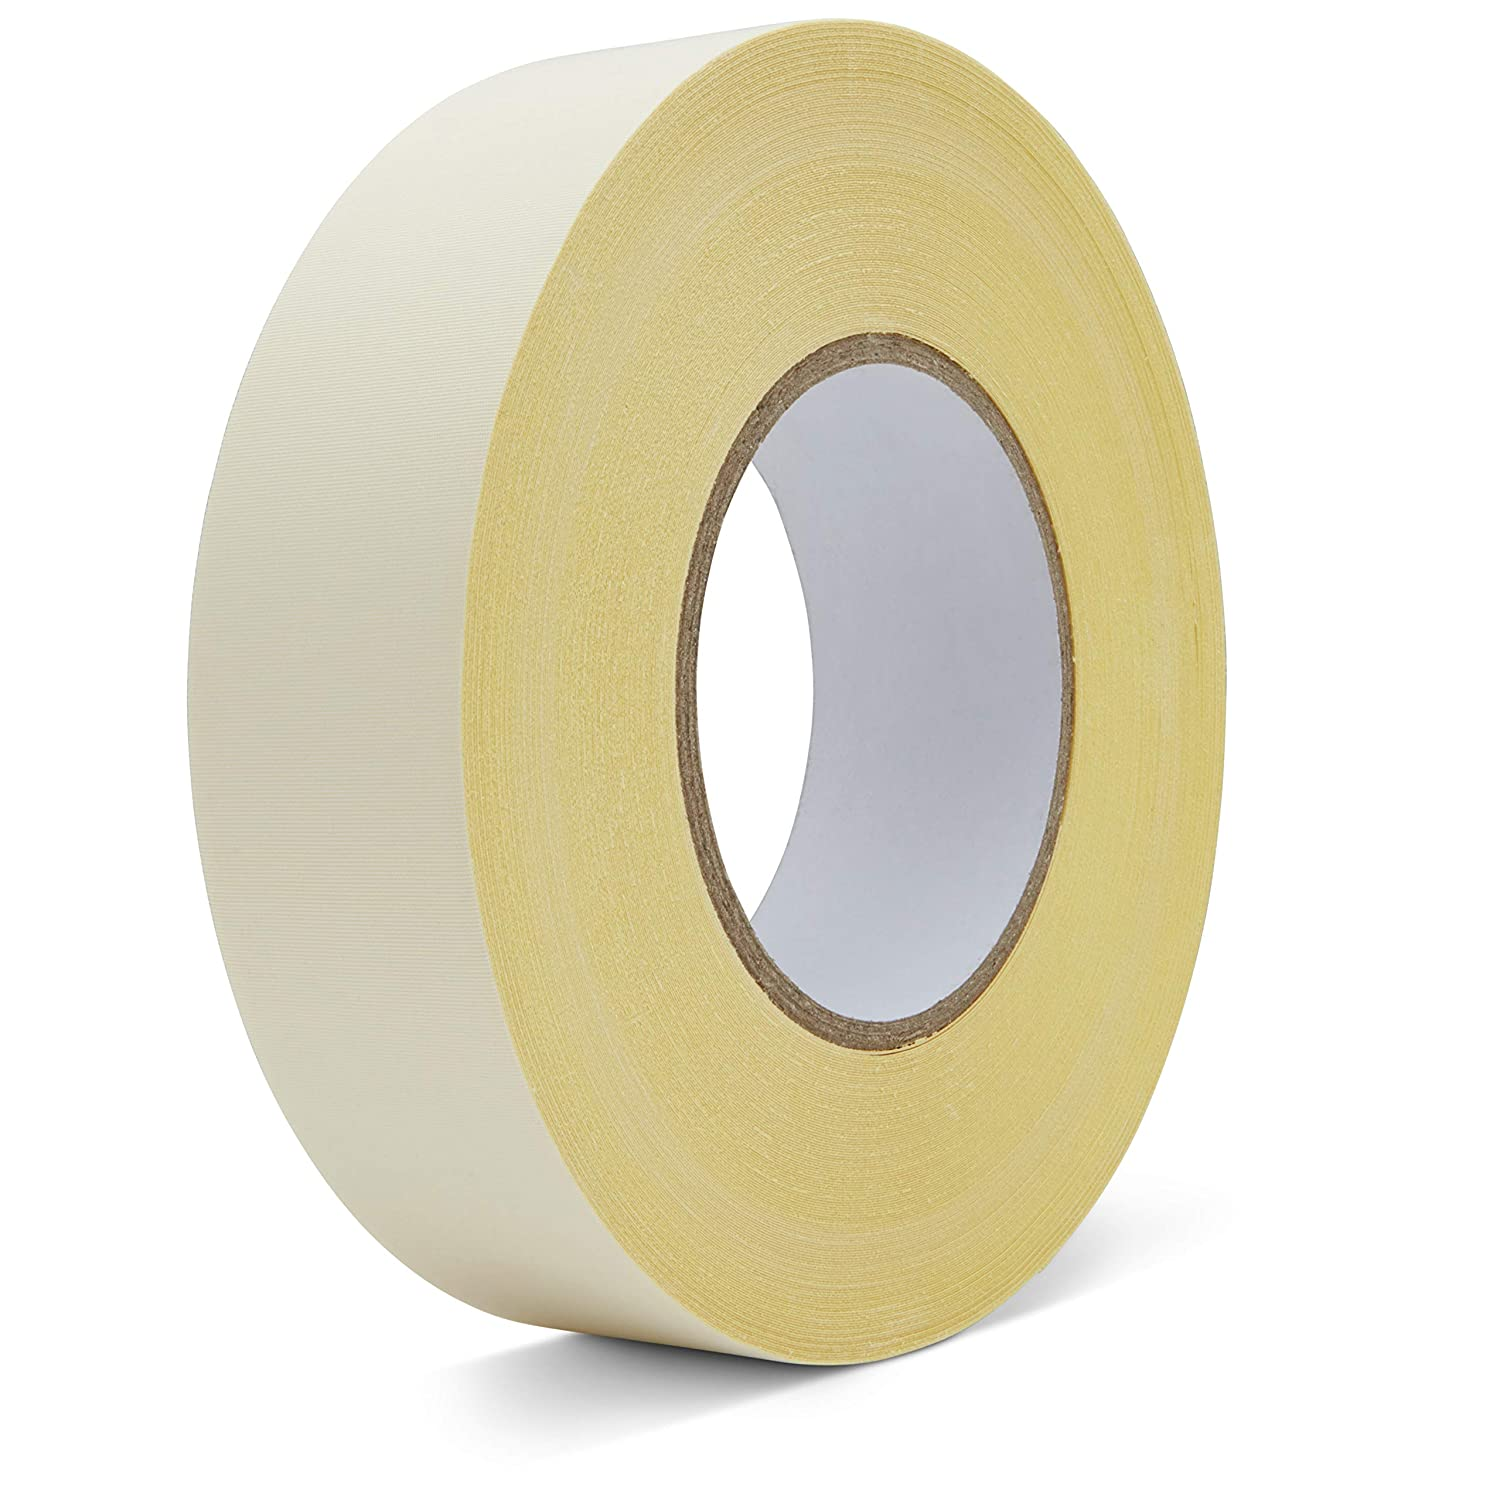 White Bookbinding Tape 1.5 Inches by 150 Feet Extra Long White Cloth Book Repair Tape for Bookbinders